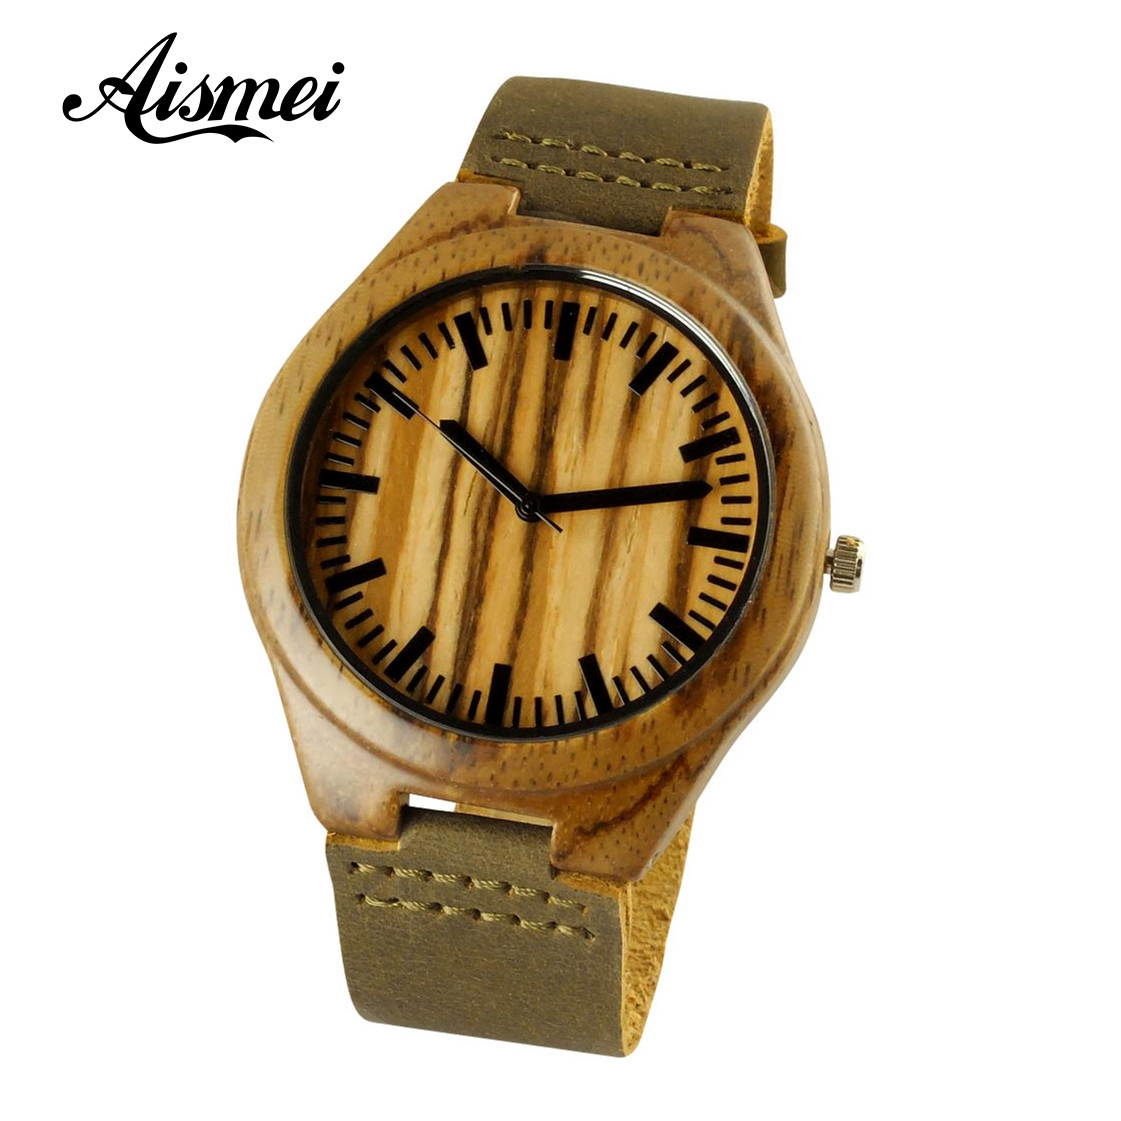 2018 Fashion Wood Quartz Watch Analog Genuine Leather Band New Arrival Handmade Wooden Wristwatch for Men Women Creative Gift